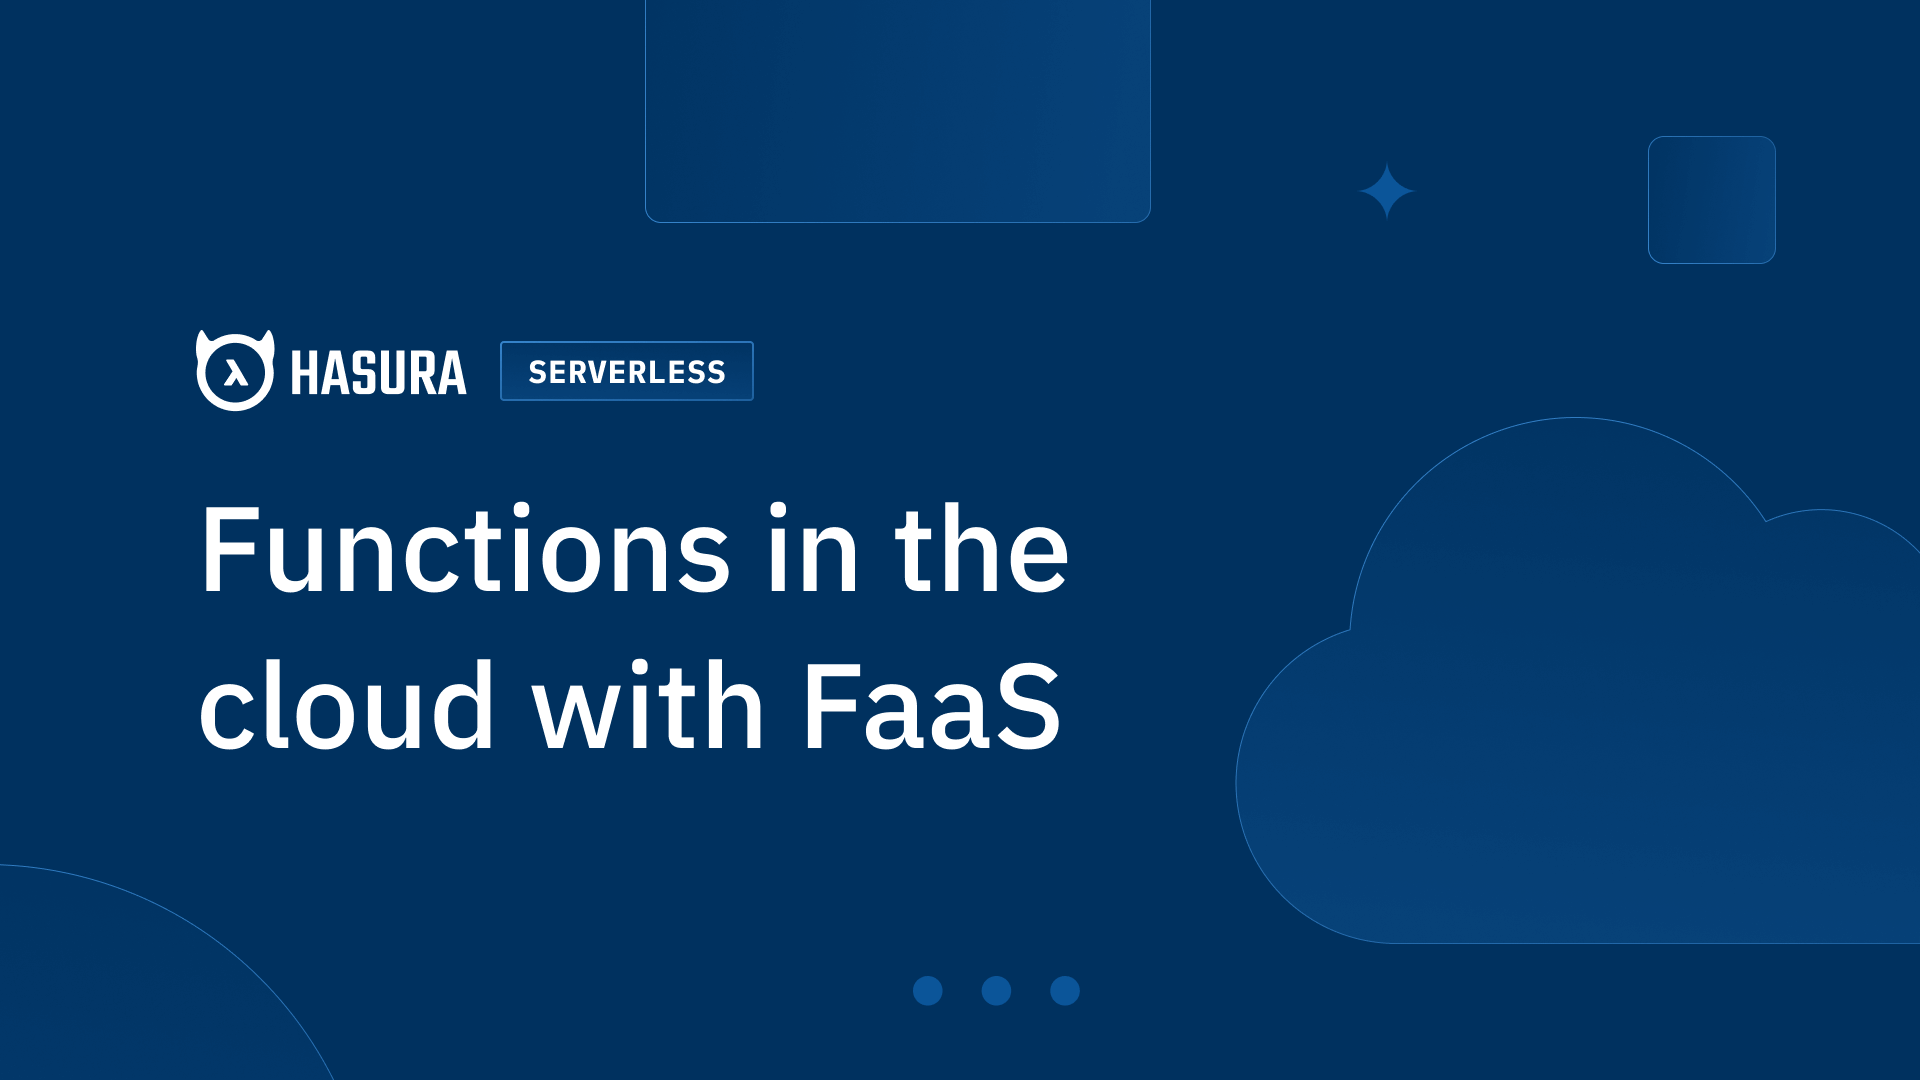 Choosing a FaaS (Function as a Service) provider in 2021